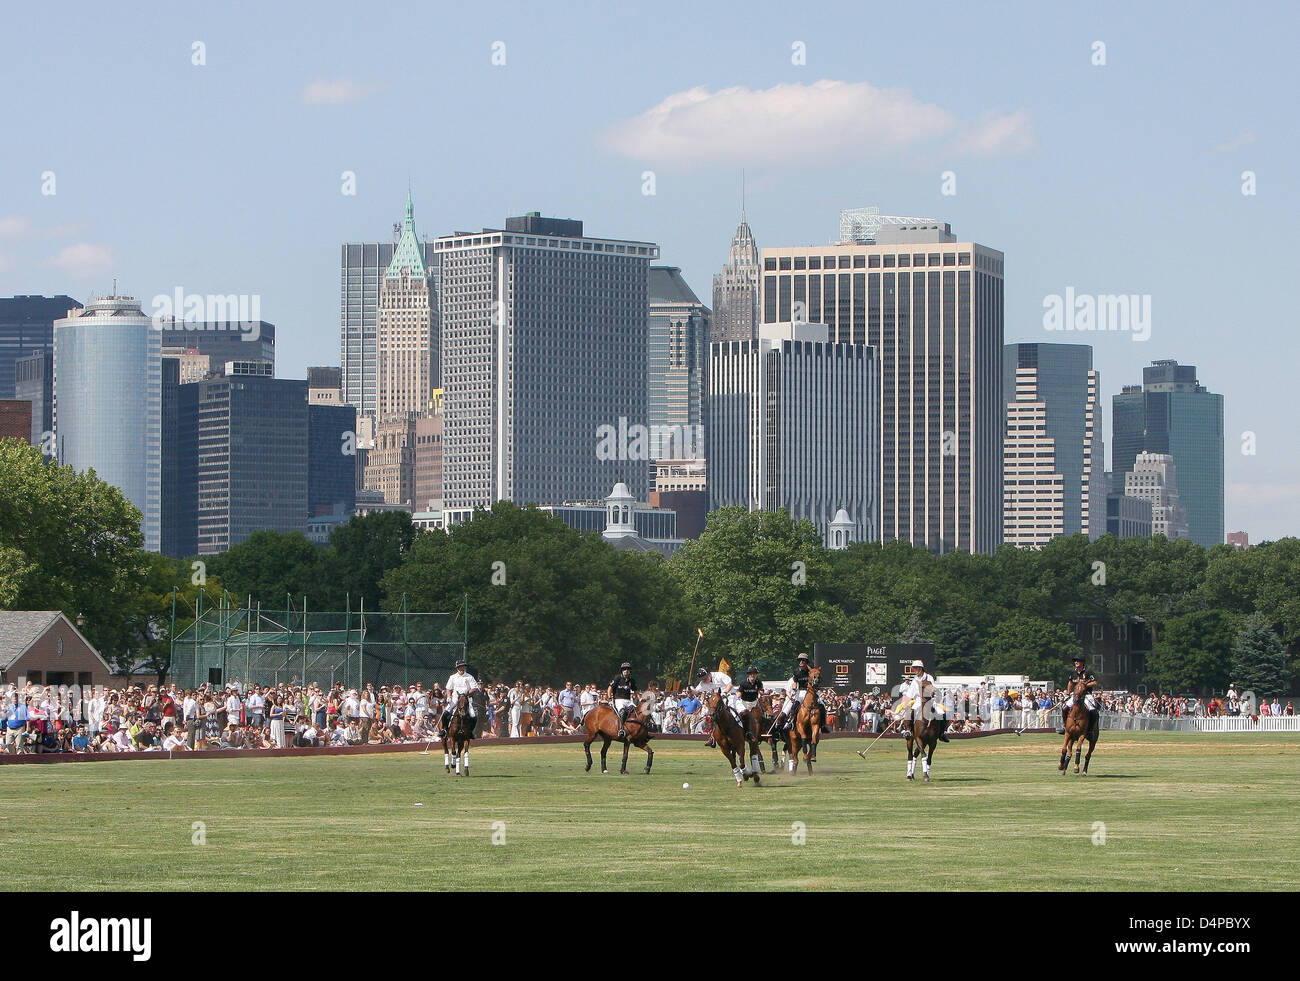 The picture shows the Manhattan Polo Classic match on Governors Island in New York, USA, 30 May 2009. The Manhattan Stock Photo